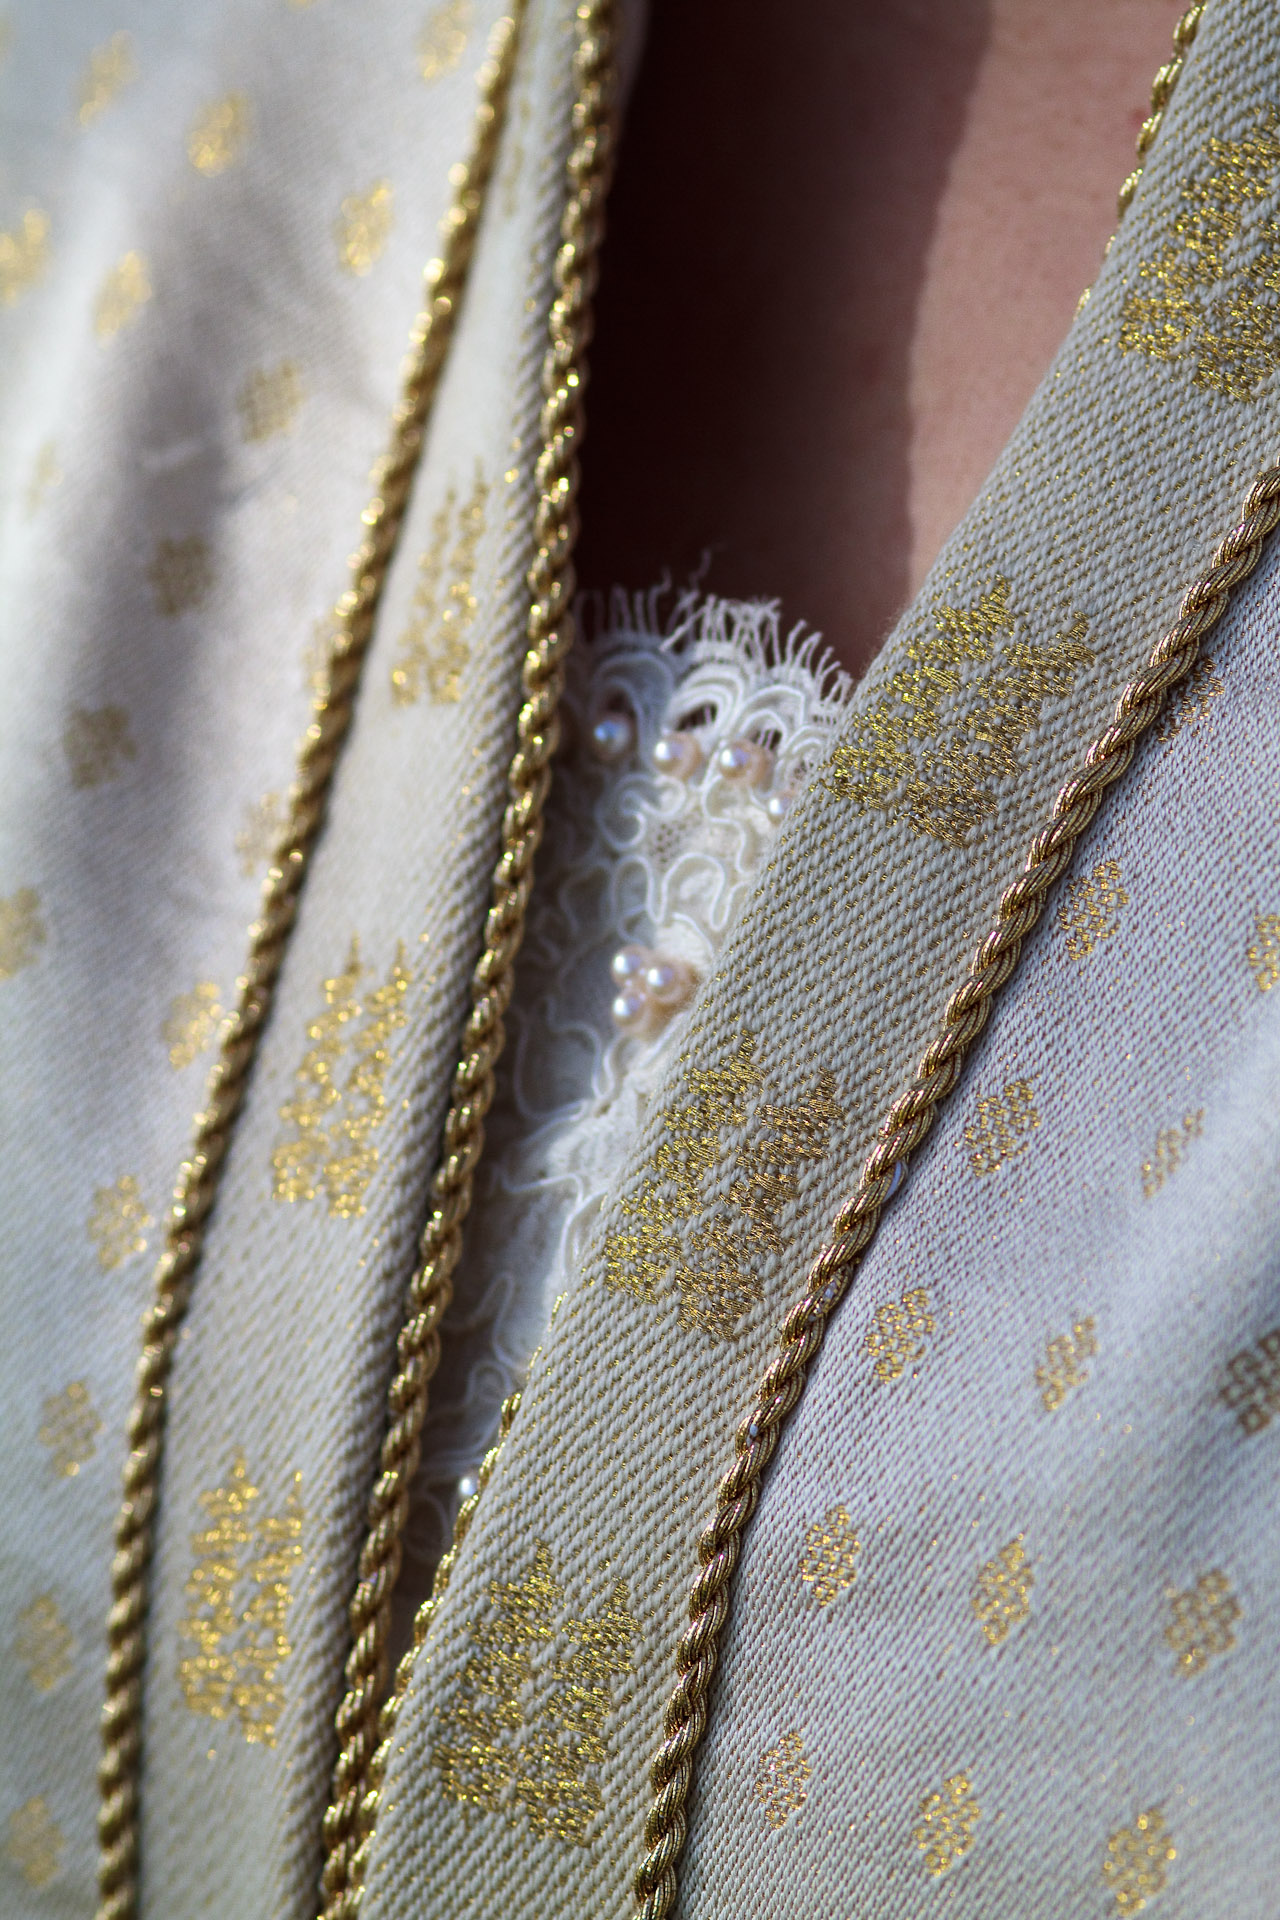 Neckline of handwoven wedding dress / coat